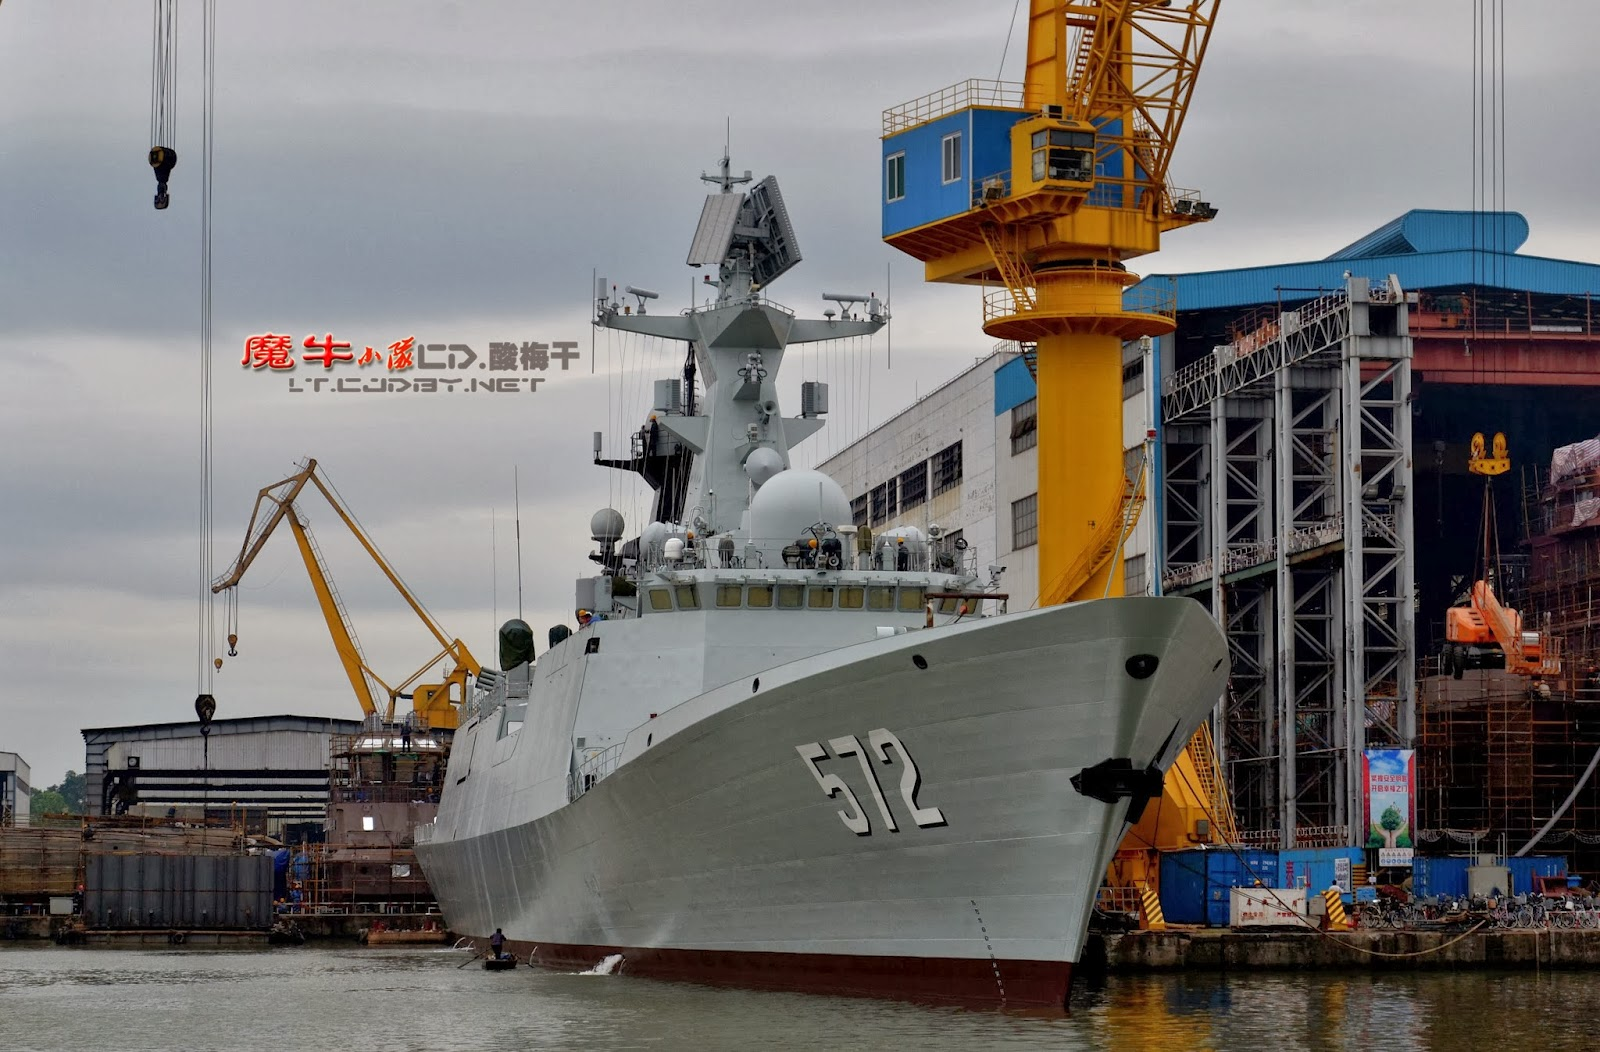 Hengshui China  city pictures gallery : Type 054A Frigate 572 衡水 Hengshui China Defence Watch